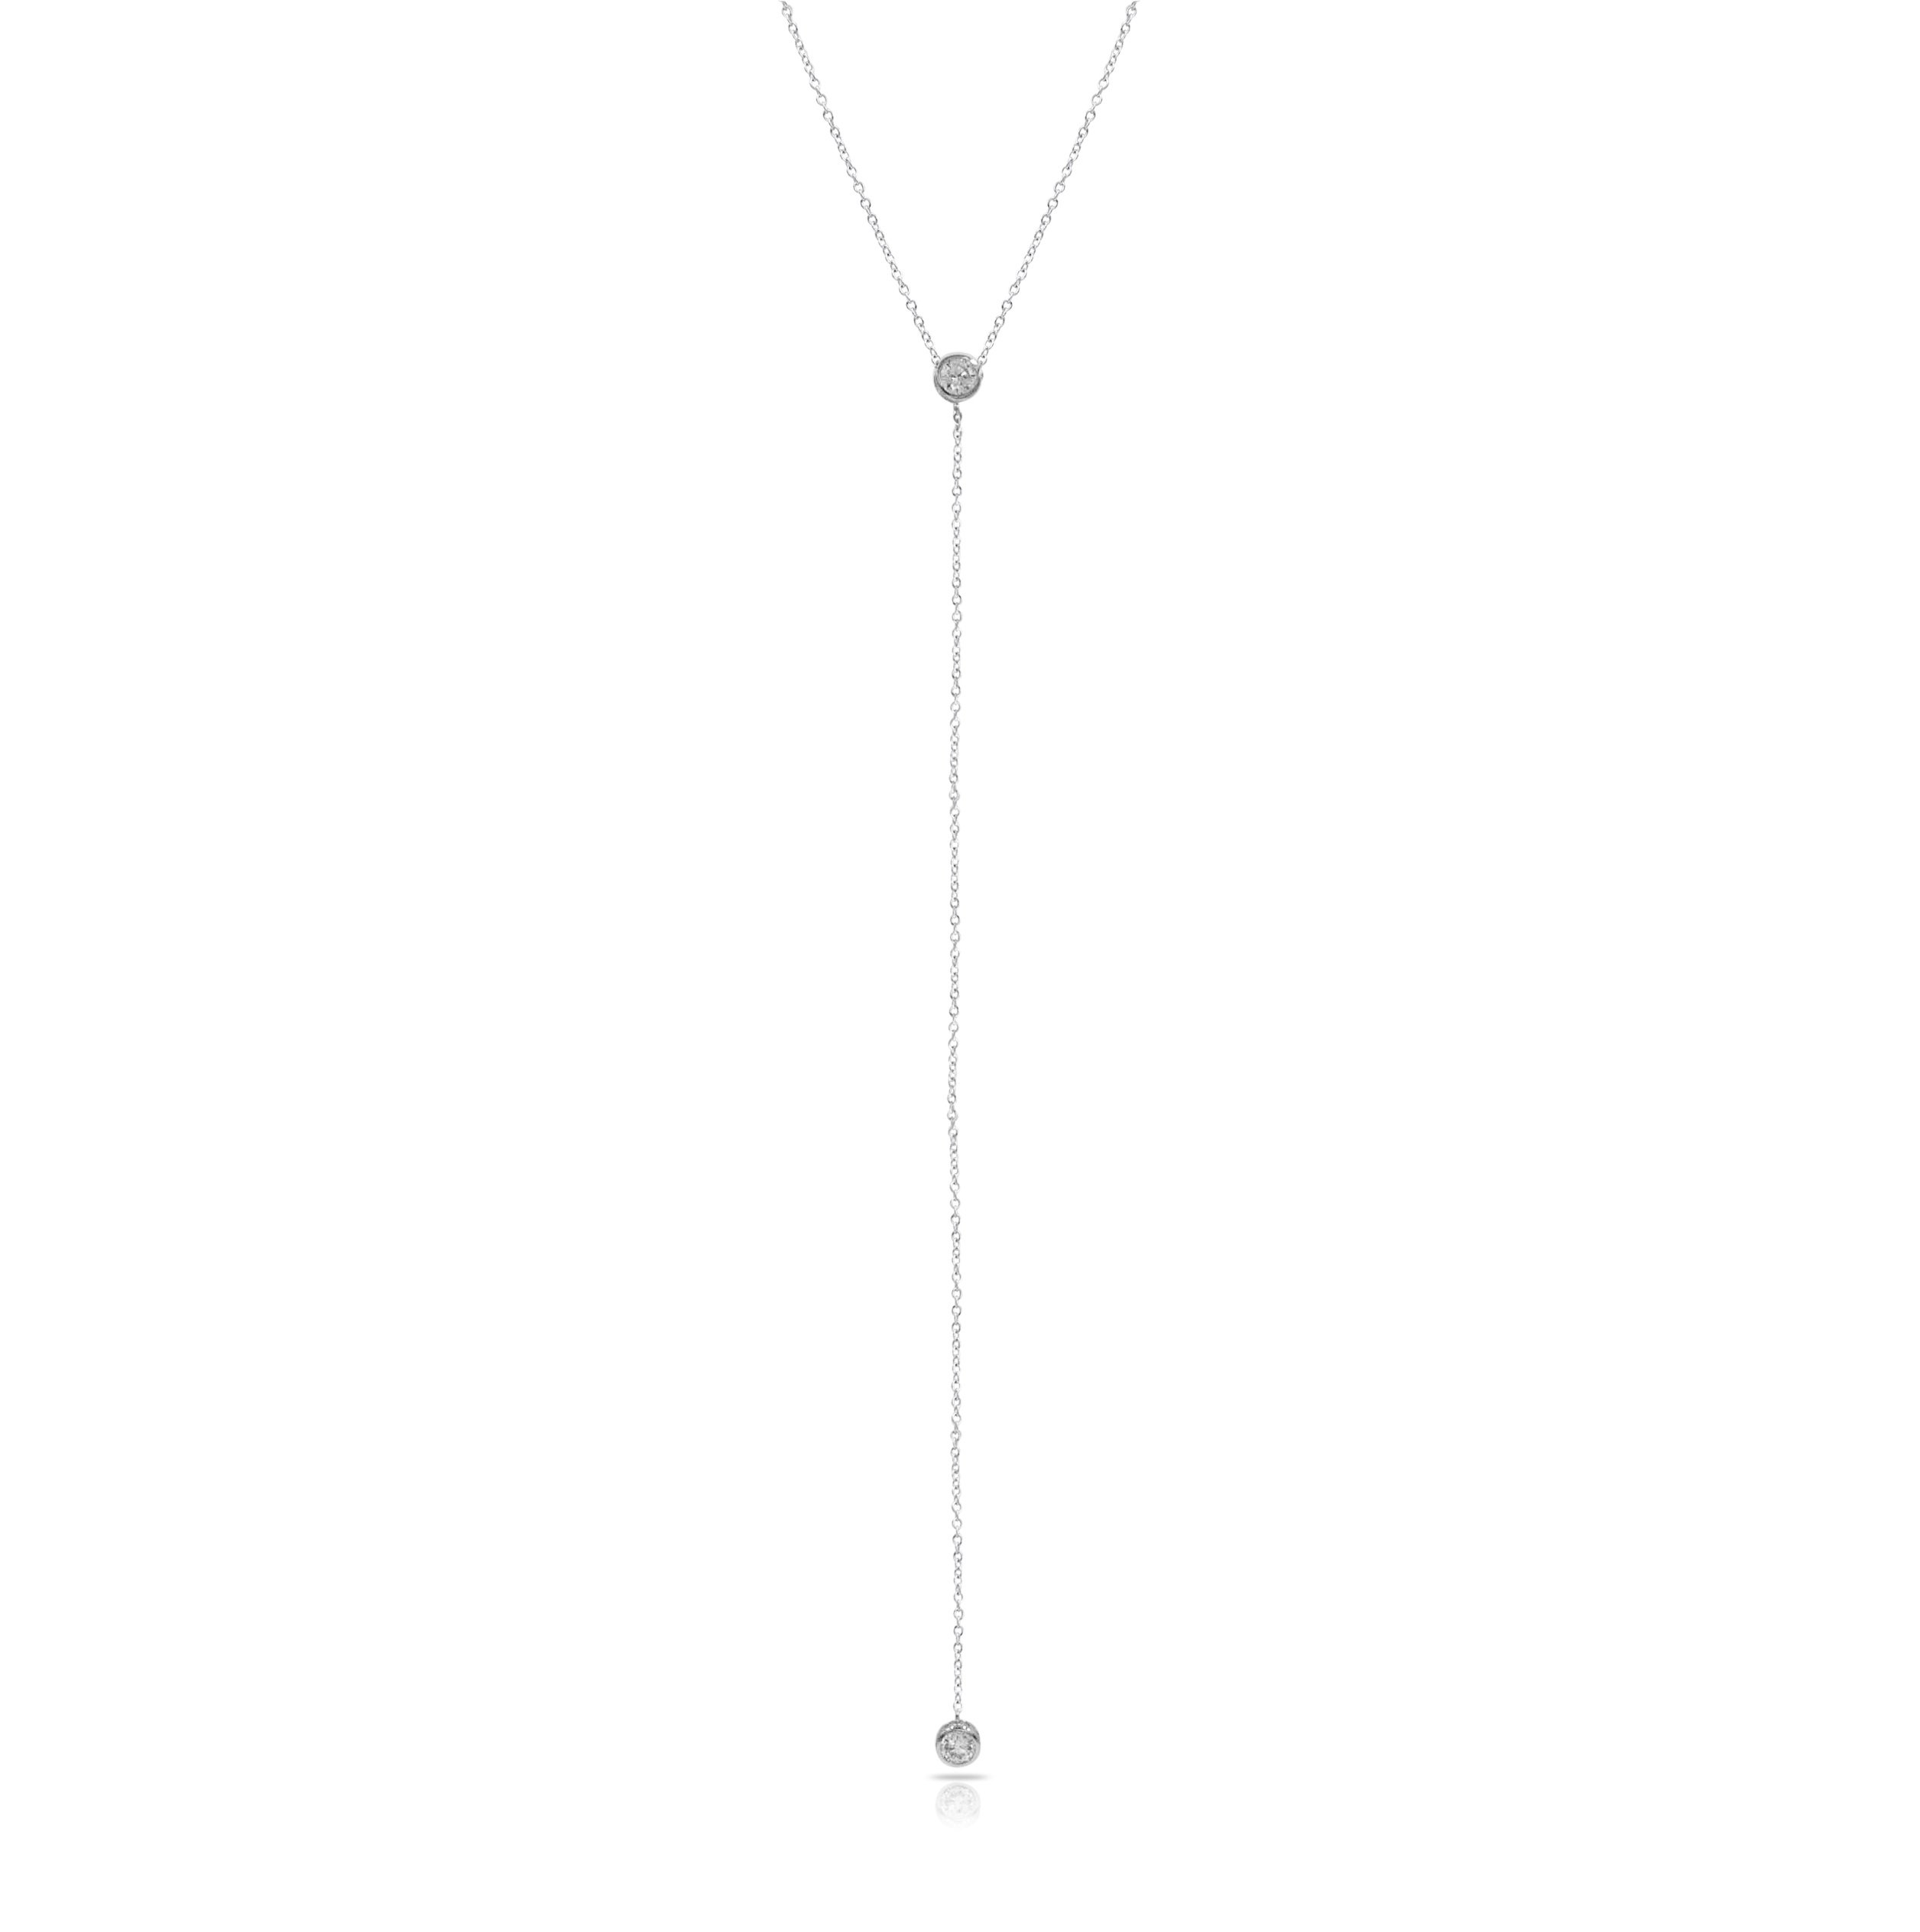 Sterling Silver Y Droplet Lariat Long Chain Necklace with Round Solitaire Bezel CZ Crystal Charm, Rhodium Plated 925 Silver, Adjustable Chain Length 16'' - 18'', with Jewelry Box by Fifth Ave Fair